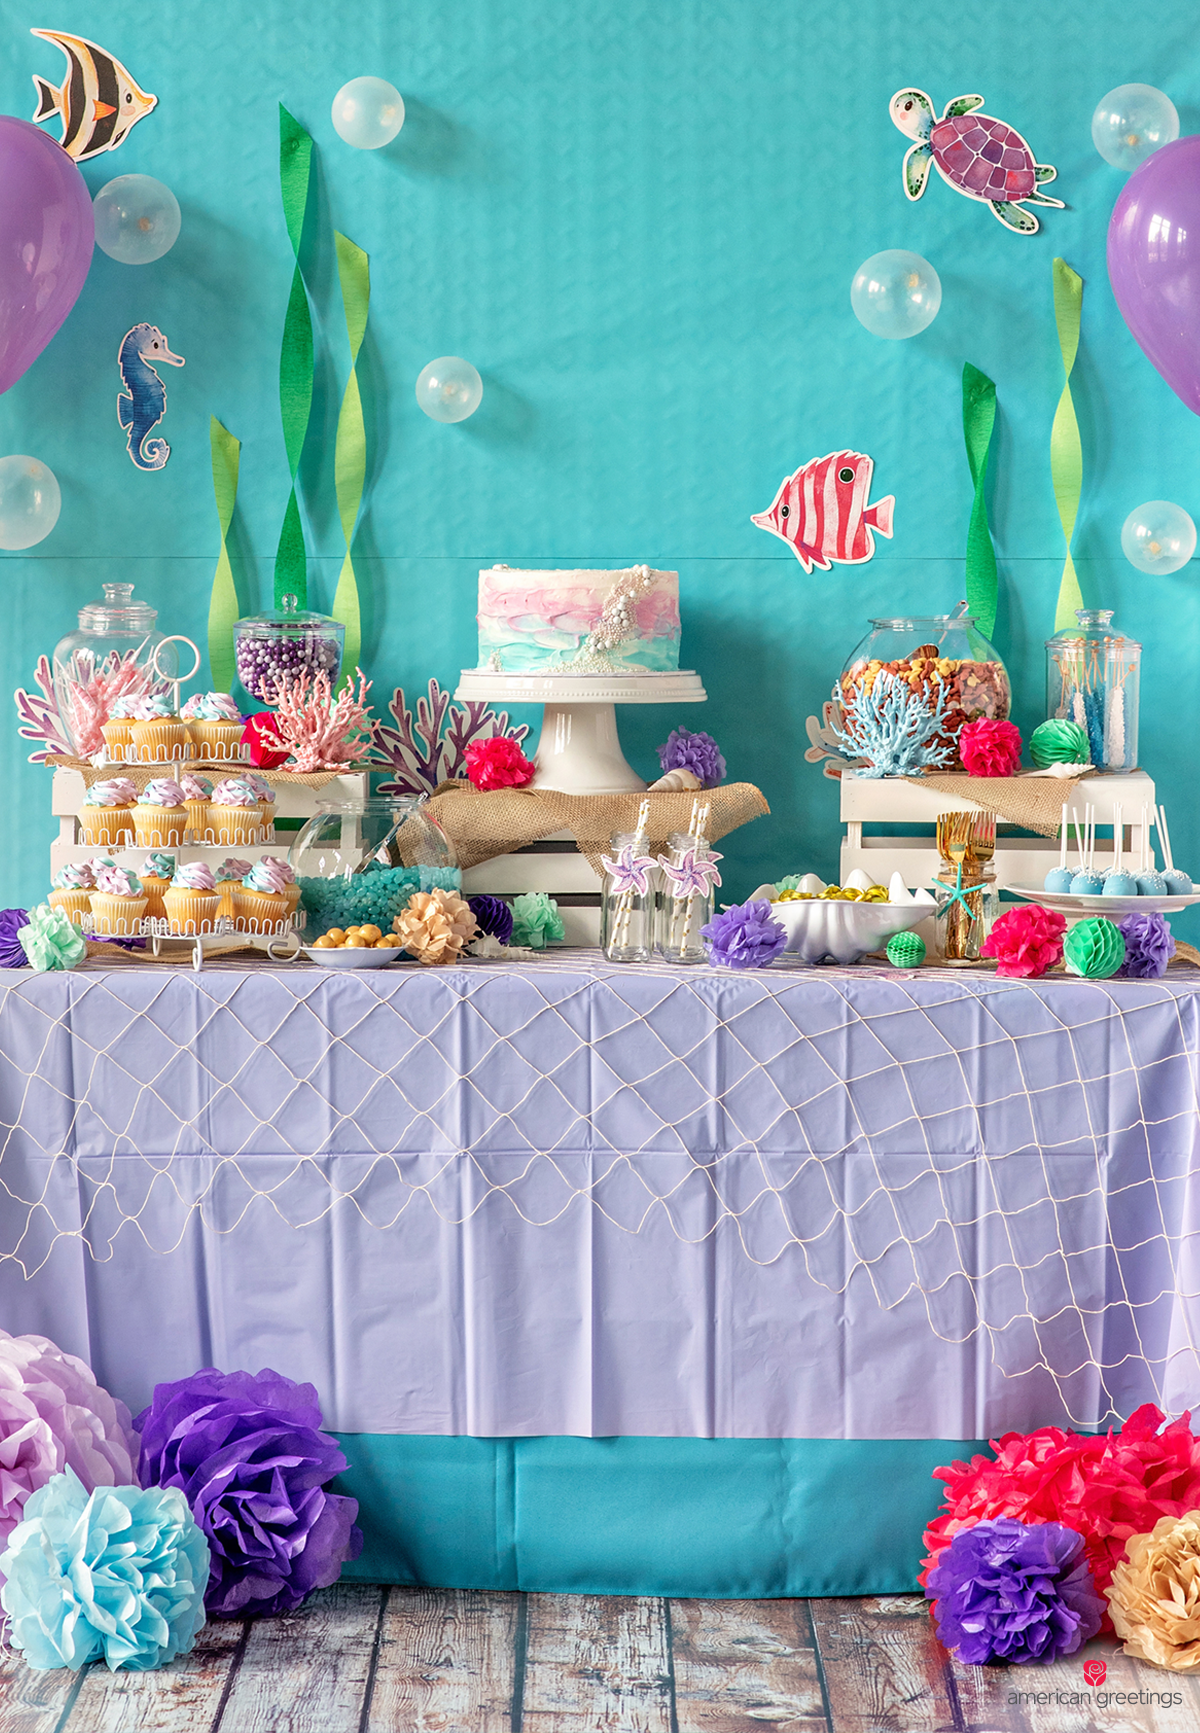 Food table layered with both turquoise fabric and a lavender plastic tablecloth, topped with netting and accented with floor pom-poms